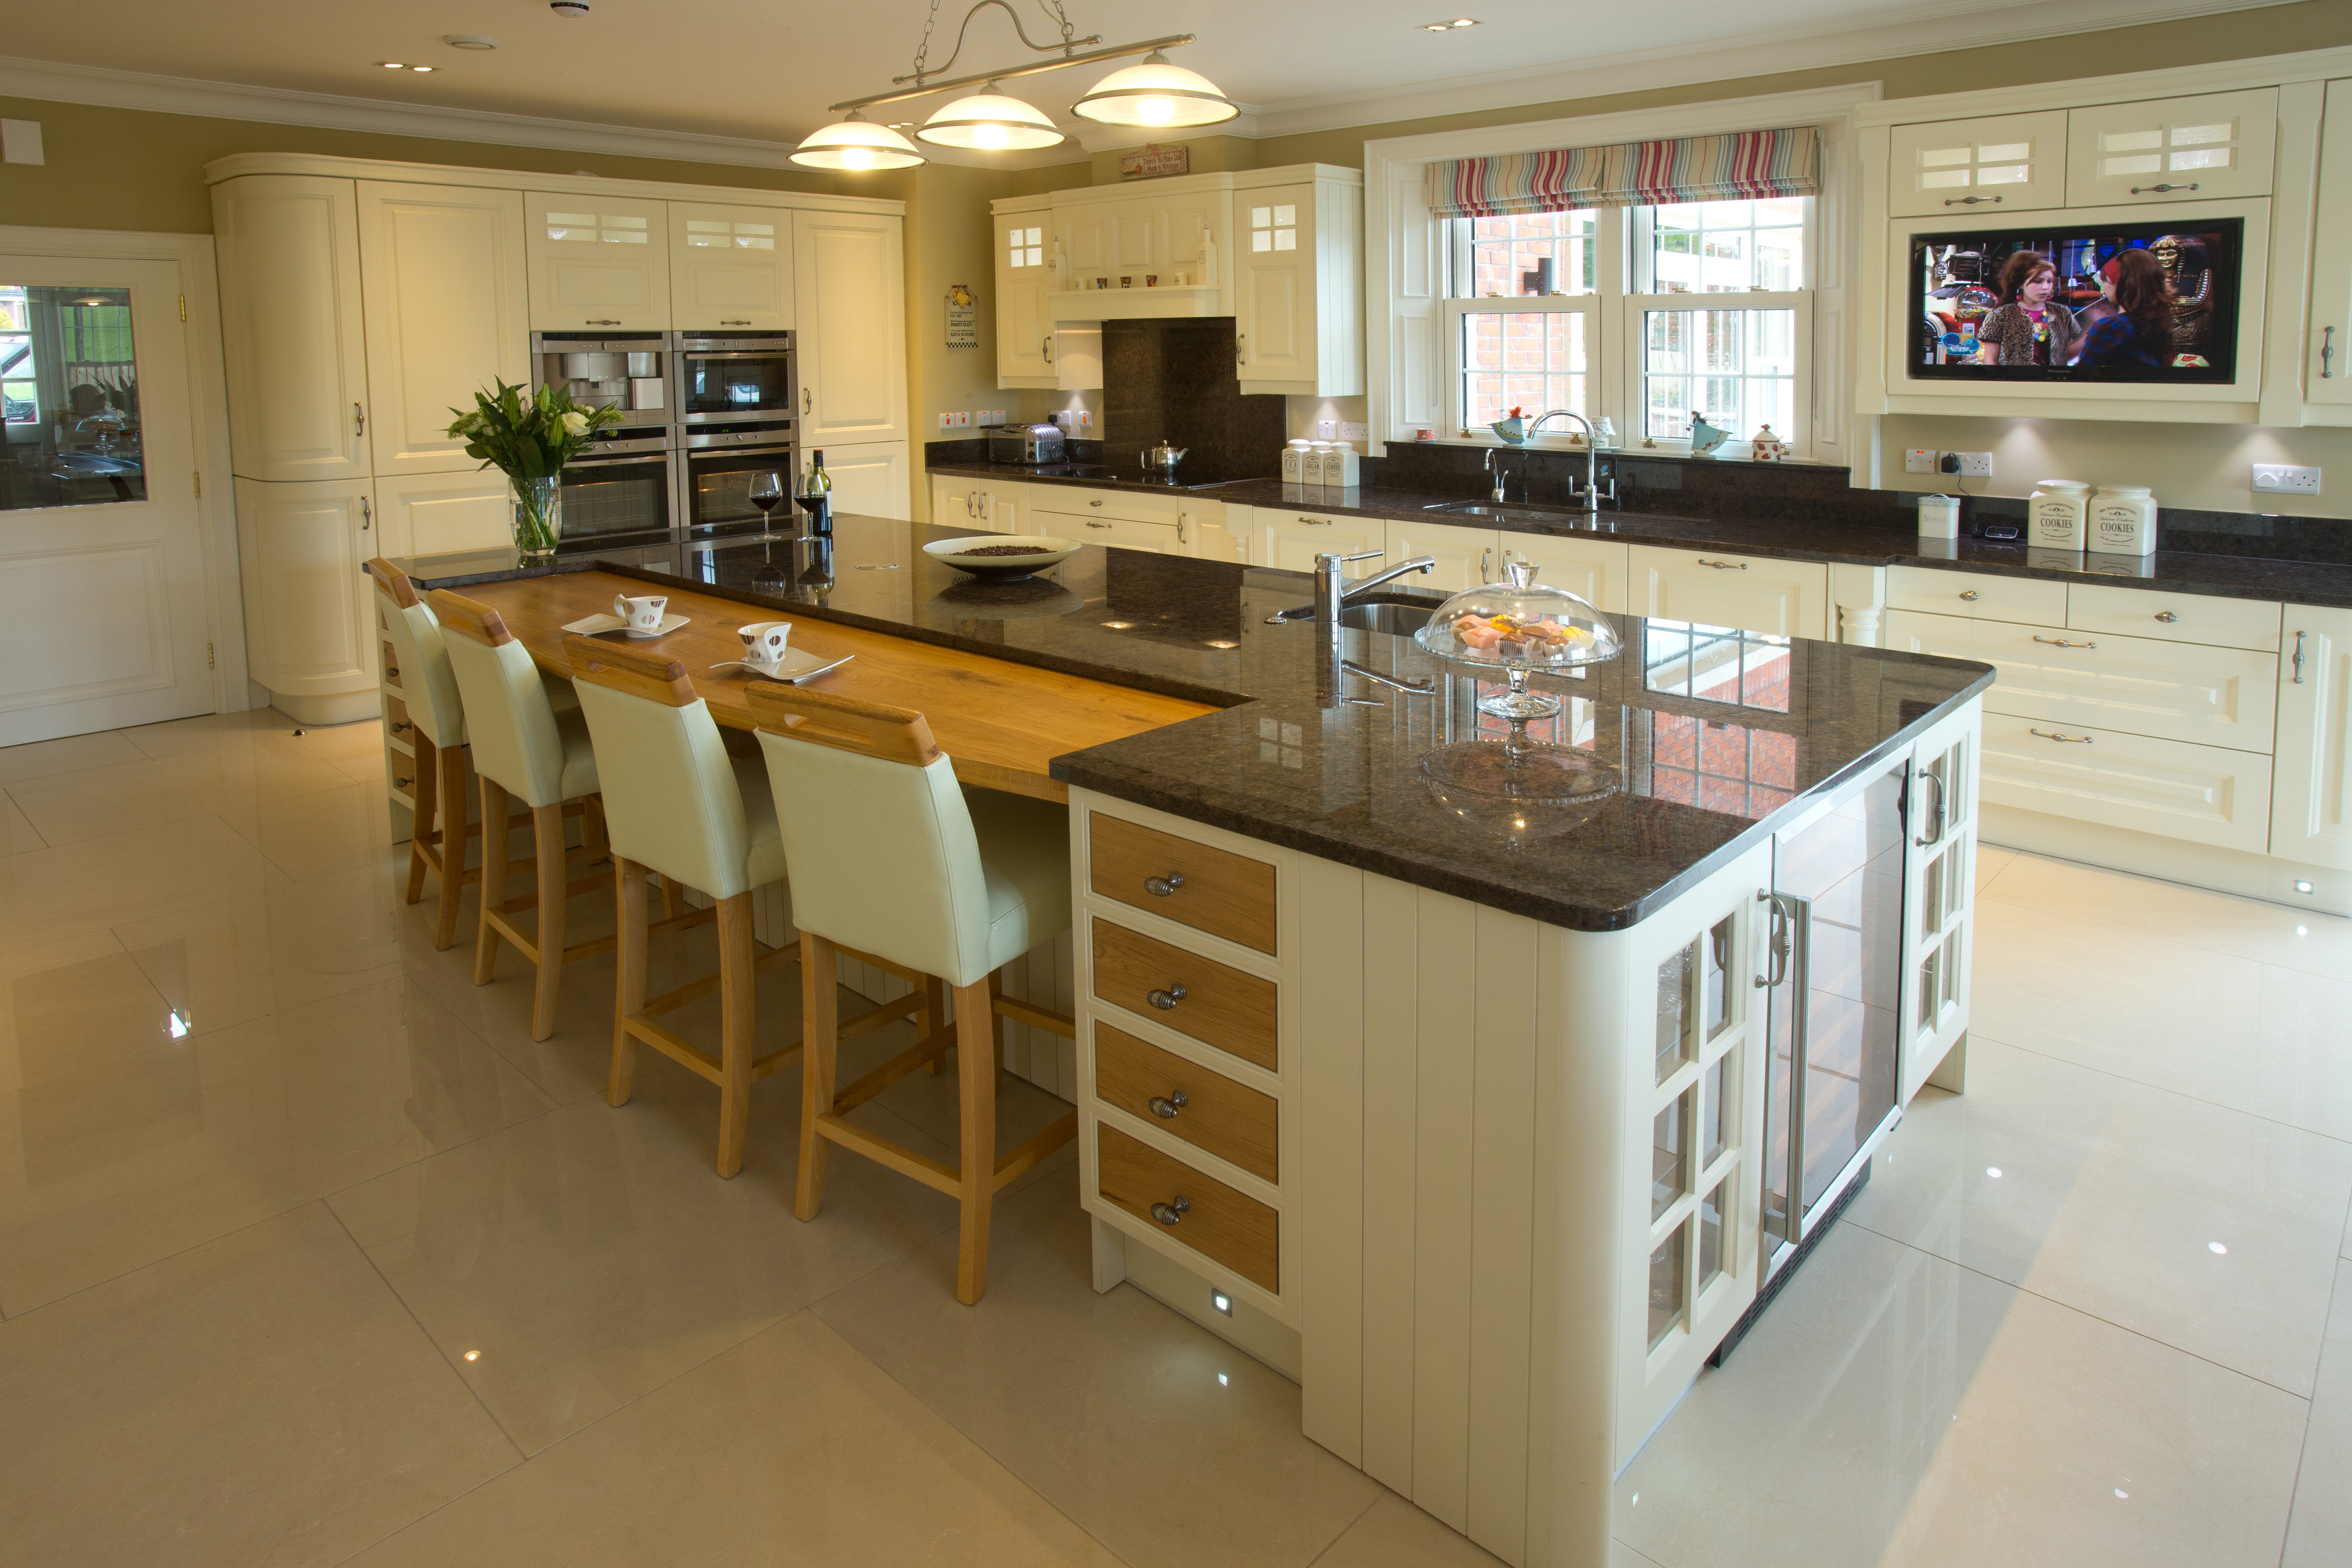 Kitchen Designs Ireland Woodbank Kitchens Northern Ireland Based Kitchen Design